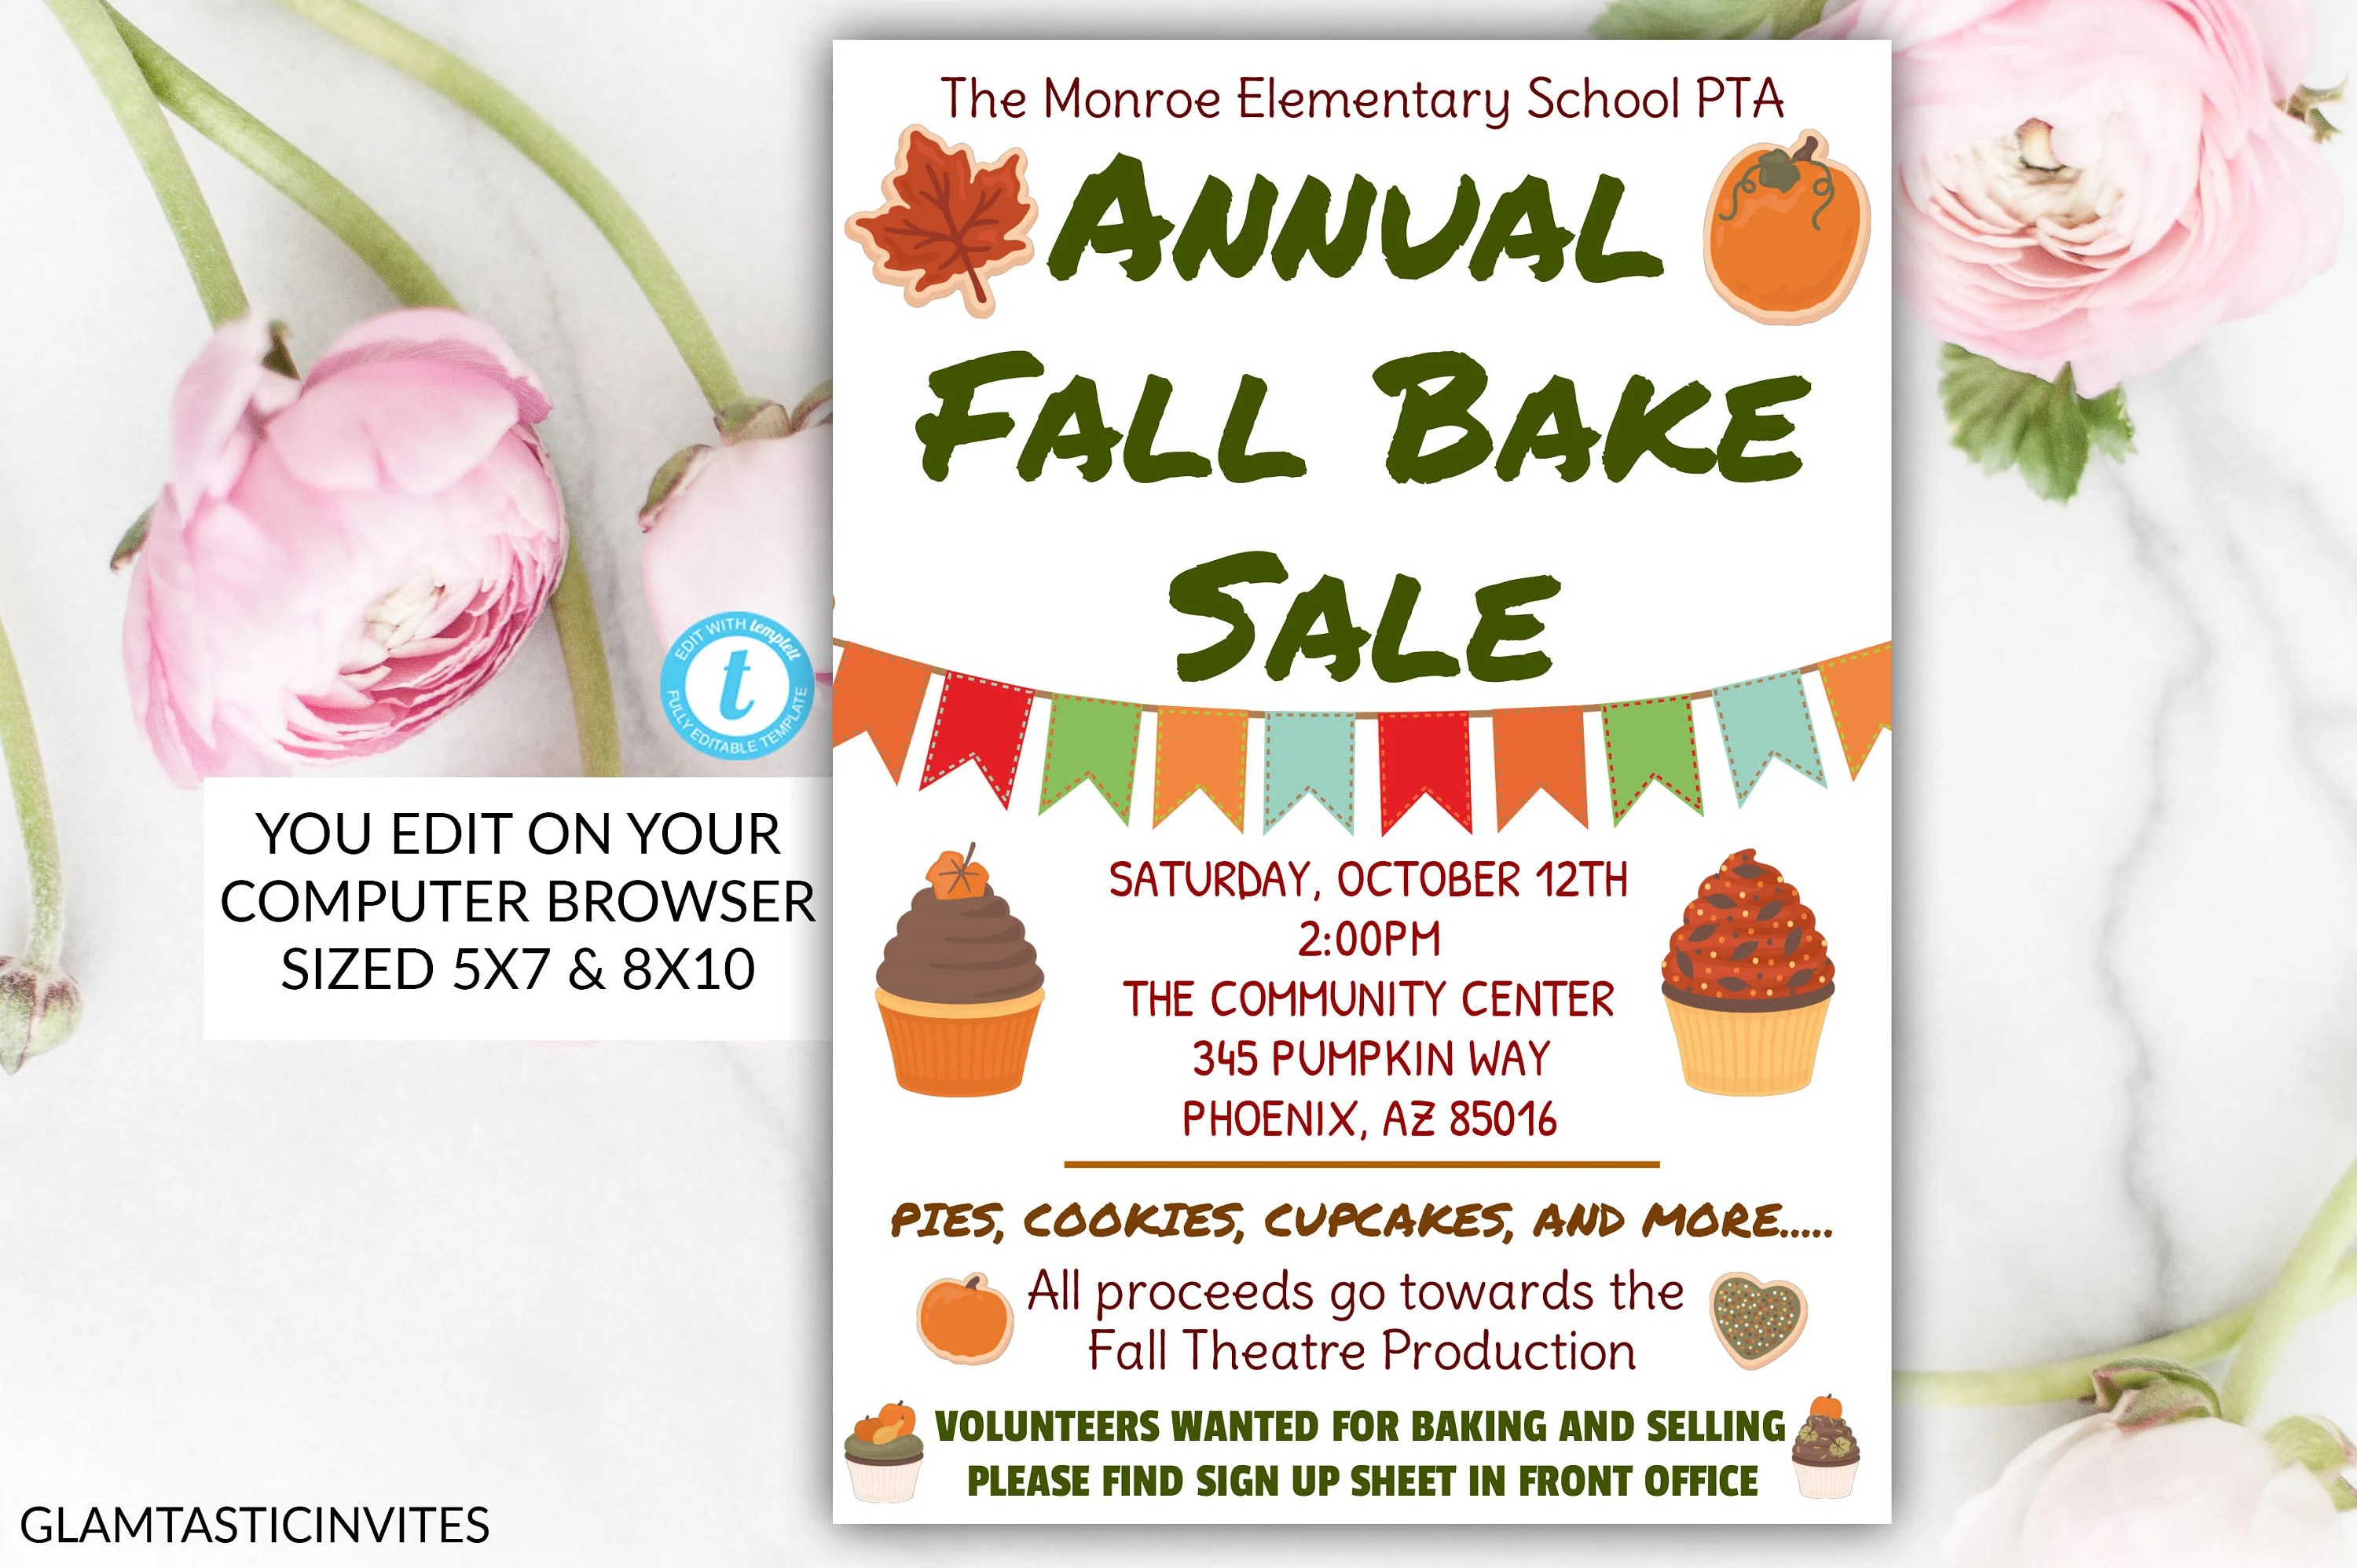 Annual Fall Bake Sale Flyer Poster Template Printable PTA Etsy